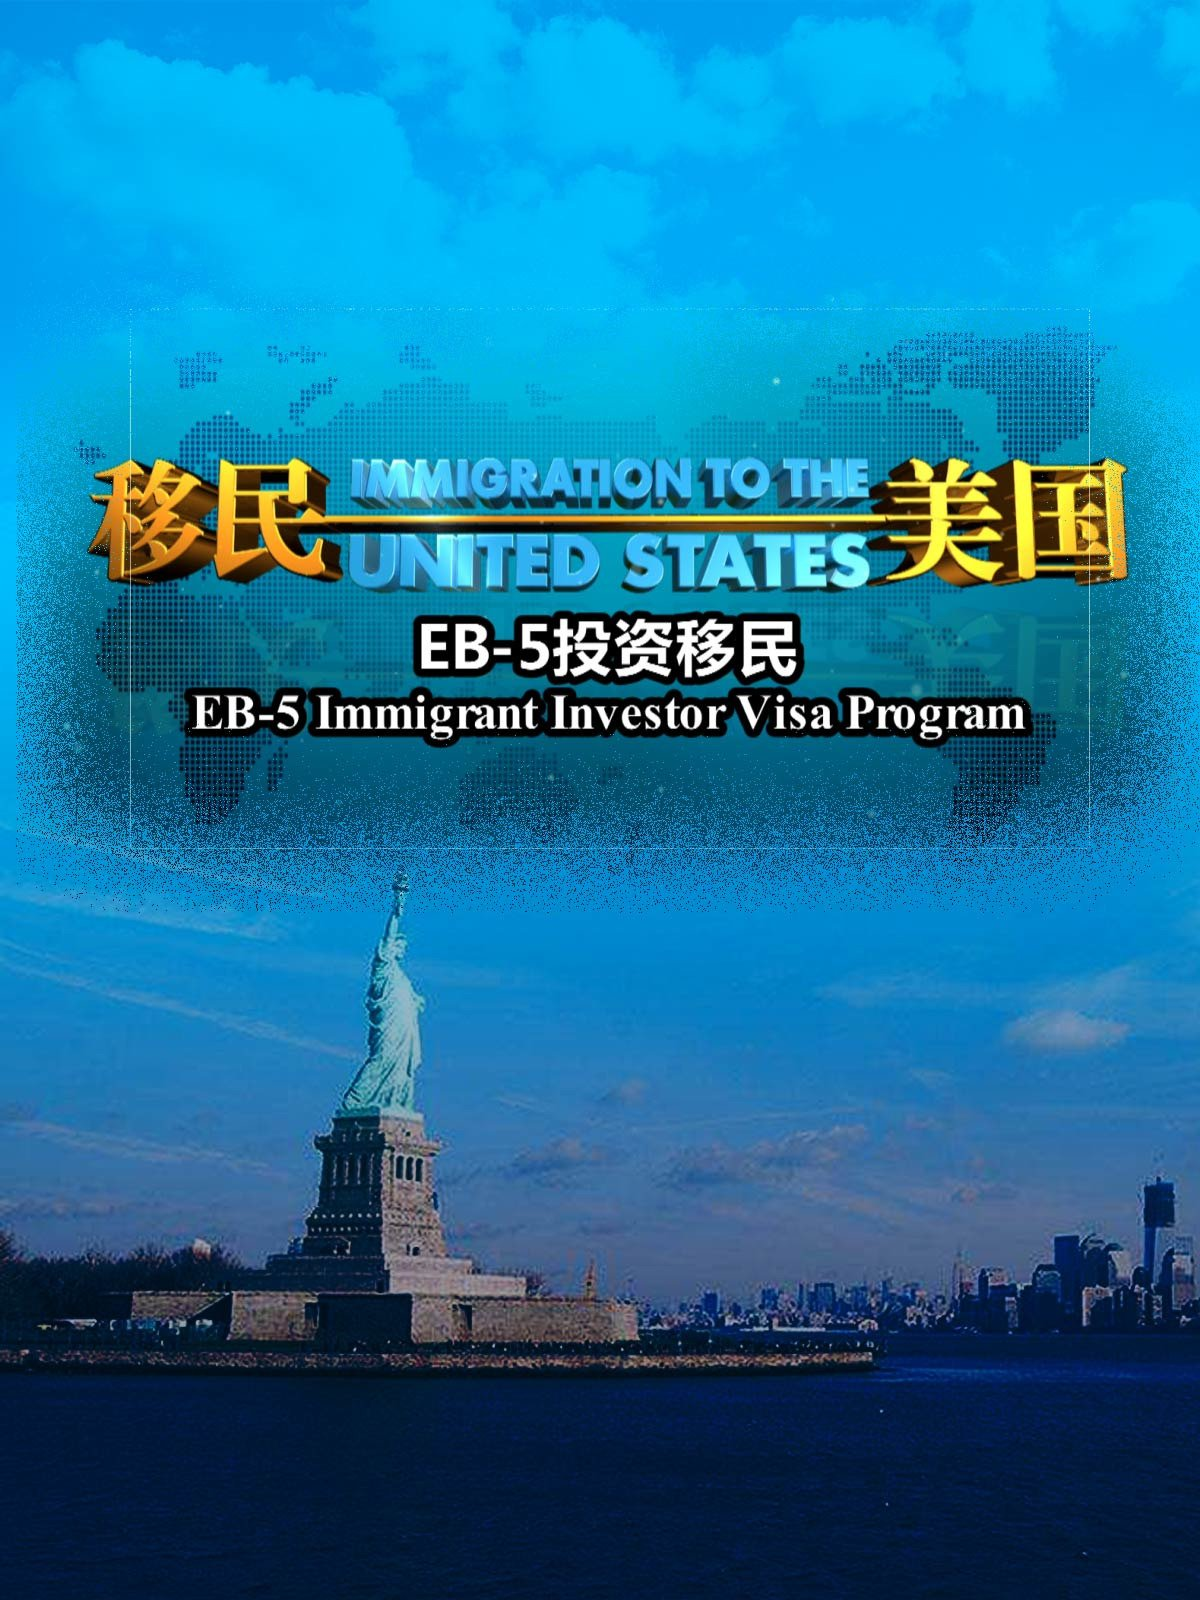 Immigration to the United States-EB-5 Immigrant Investor Visa Program